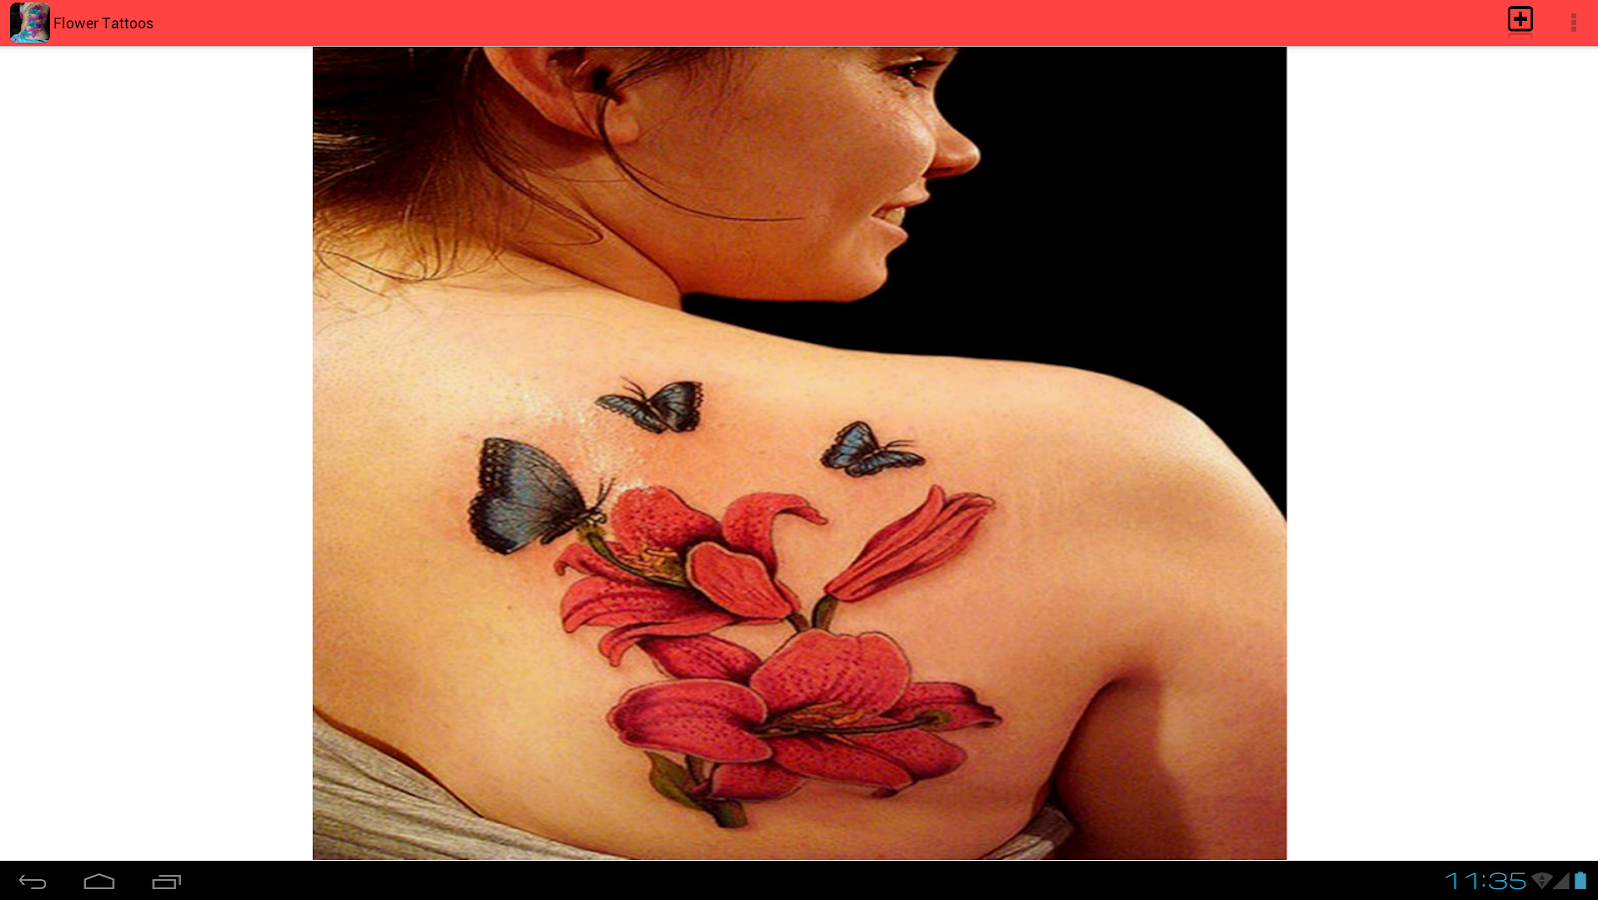 Flower tattoos android apps on google play for App for tattoos